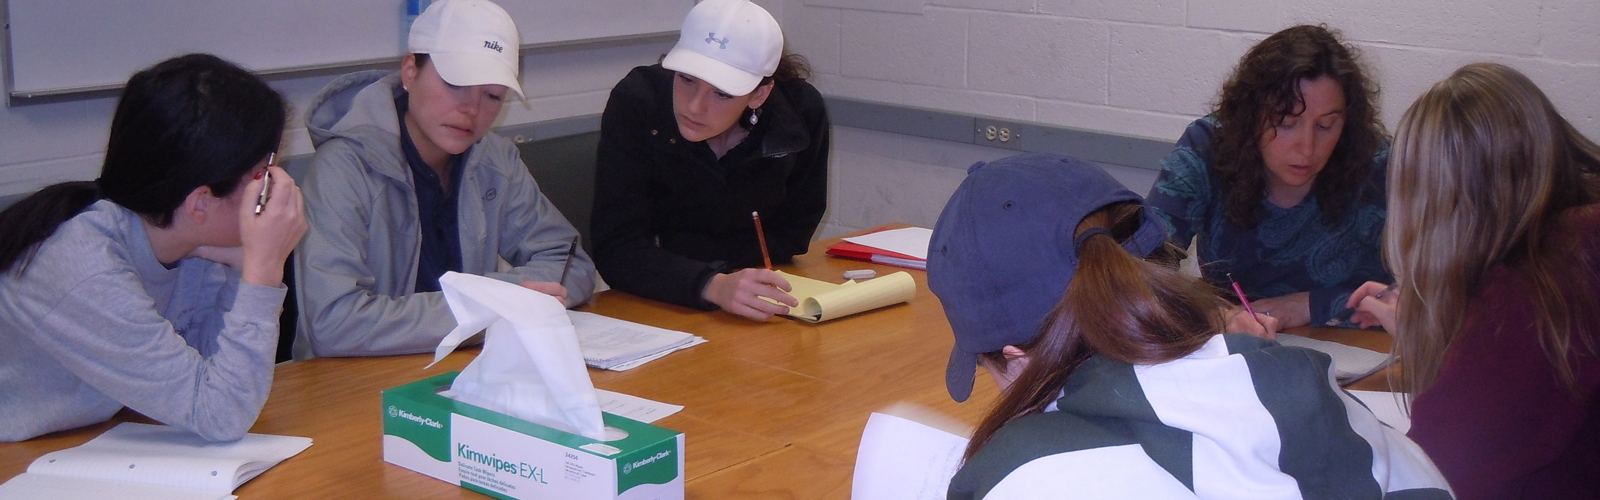 Students helping one another and working with an instructor